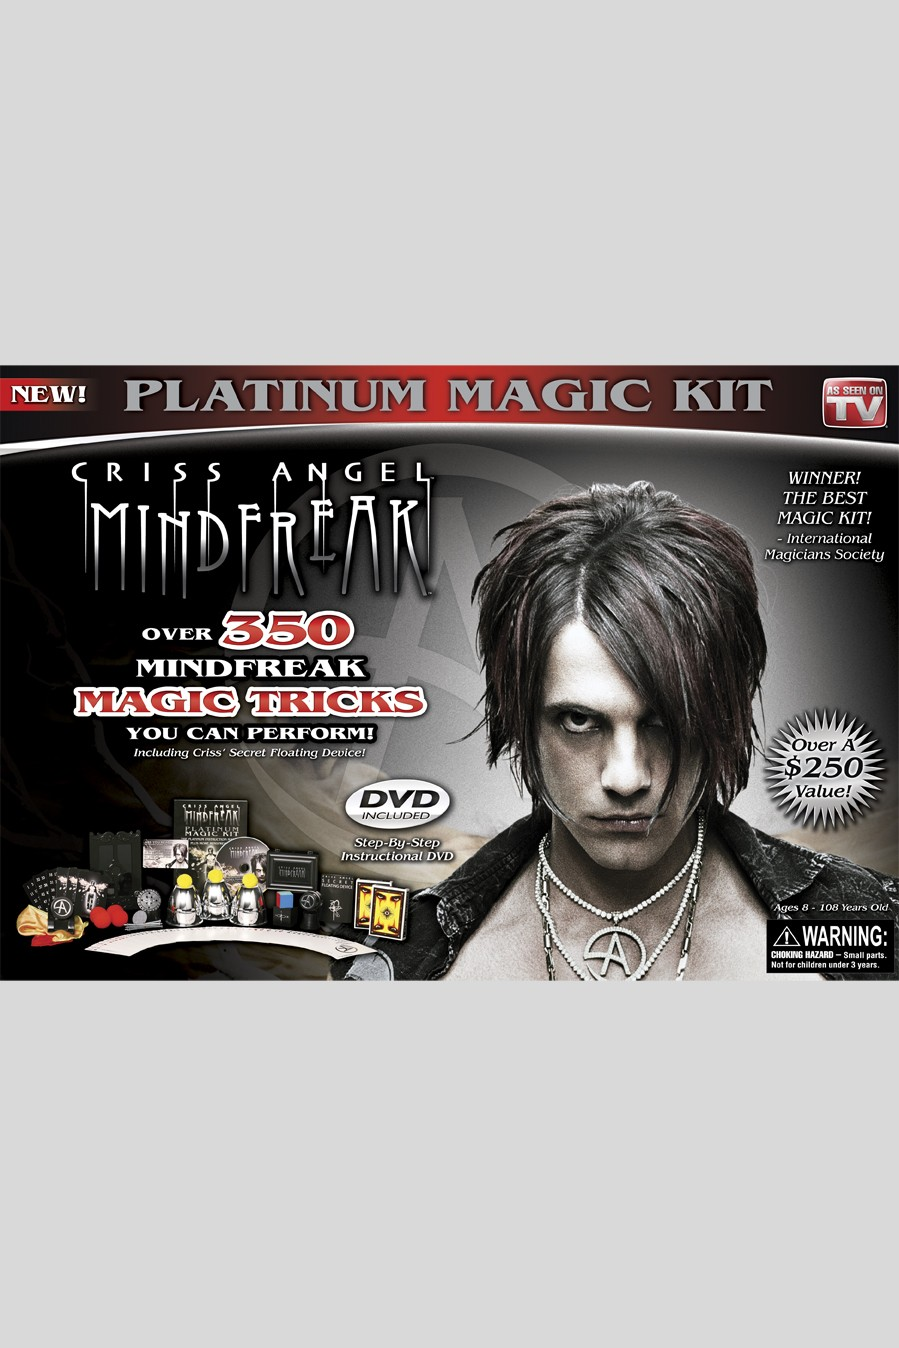 Criss Angel MINDFREAK Platinum Magic Kit